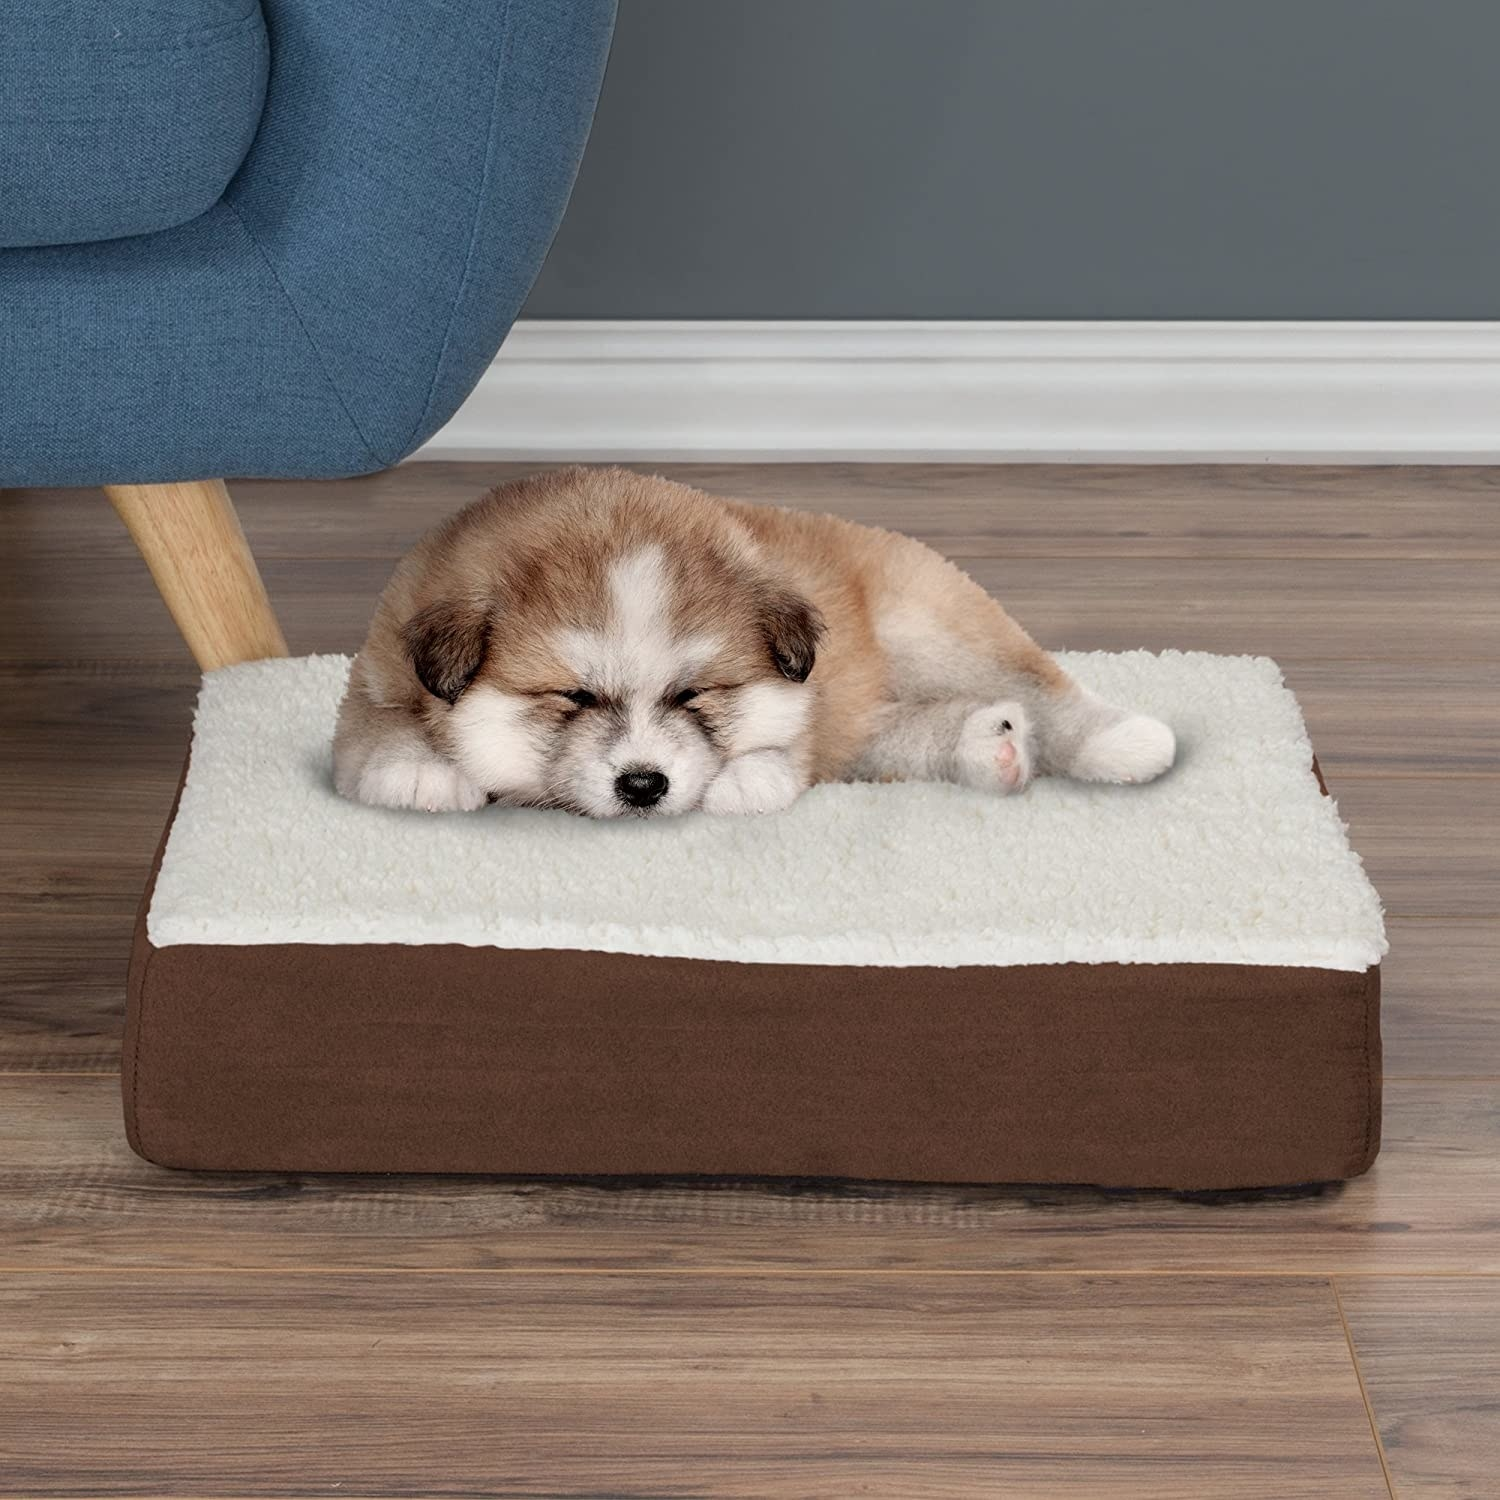 A cute dog sleeping on top of the pet bed